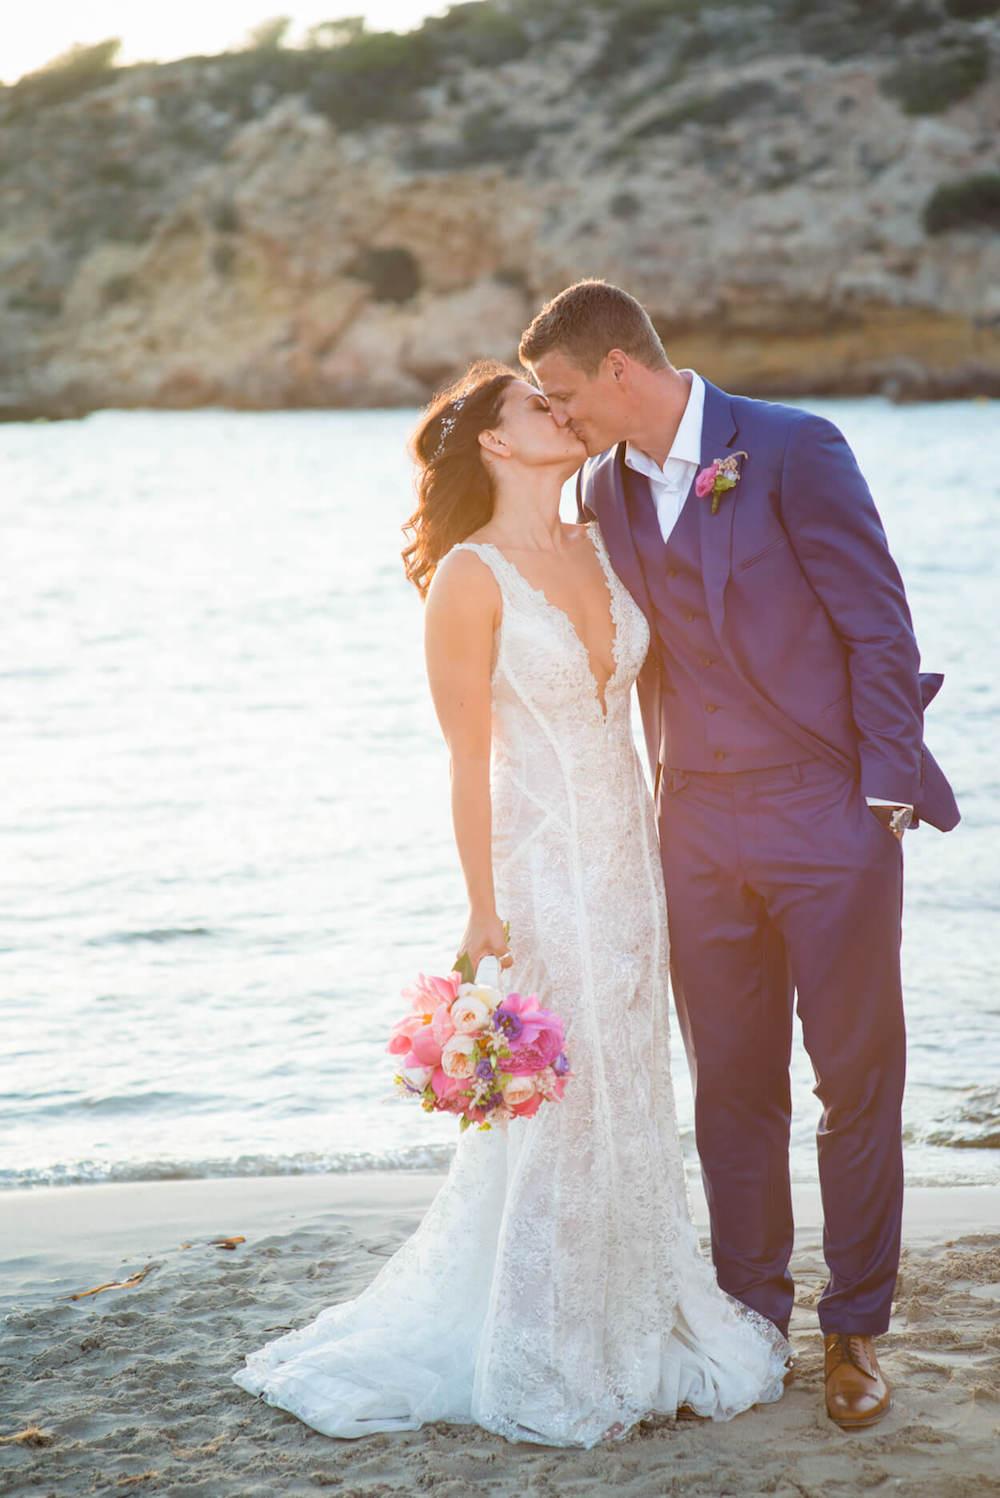 Colourful flowers wedding bouquet bride groom kiss beach venue sunset view Galai Lahav